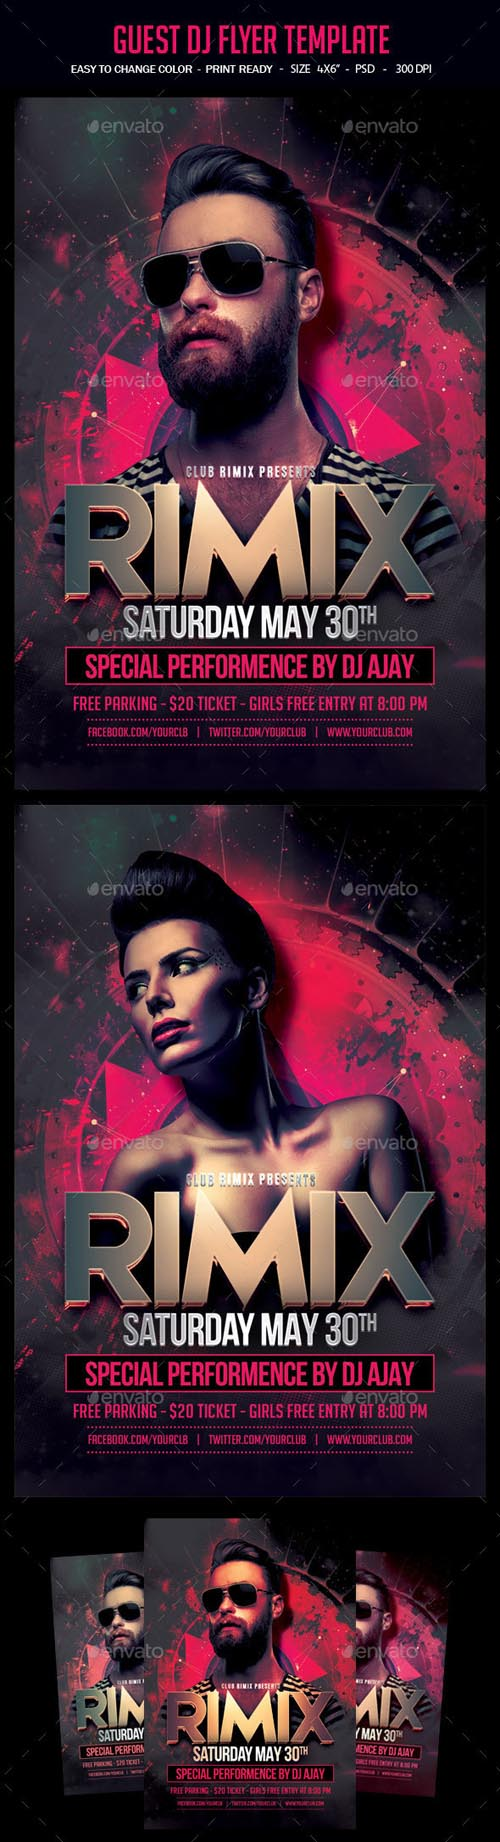 Guest Dj Flyer Template 14518779